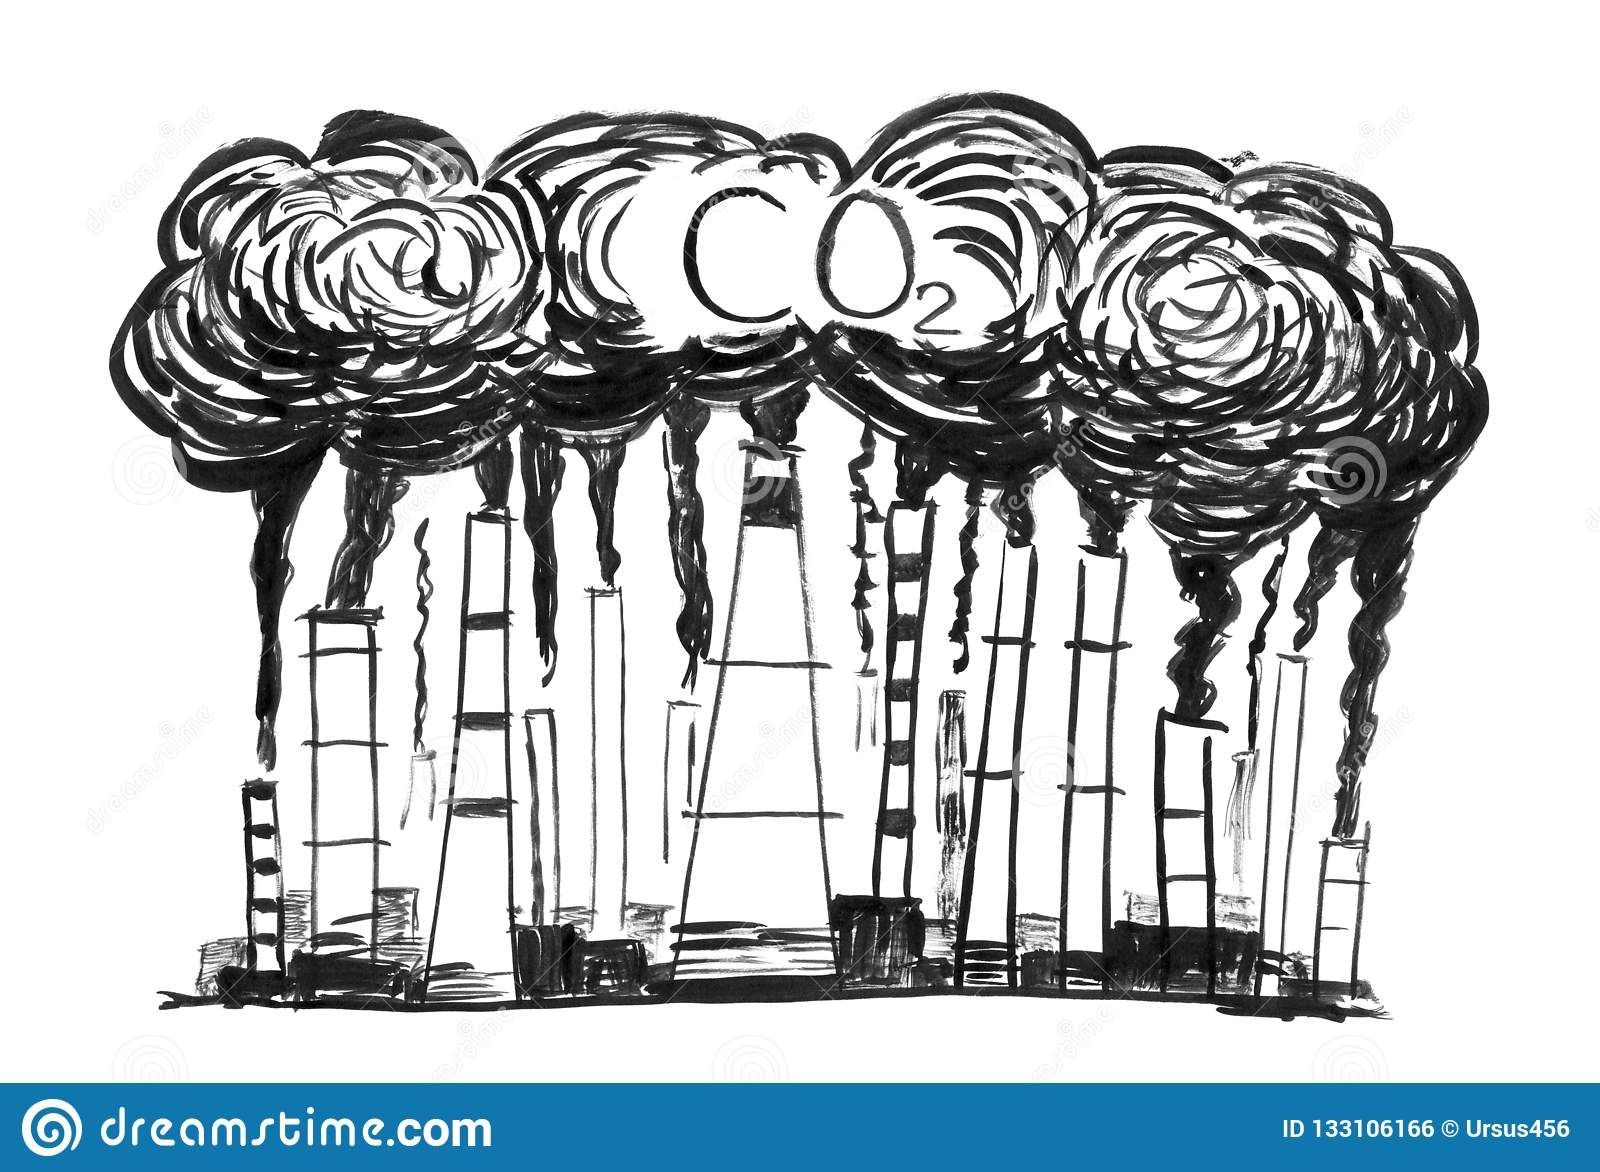 Black brush and ink artistic rough hand drawing of smoke coming from industry or factory smokestacks or chimneys into air environmental concept of carbon